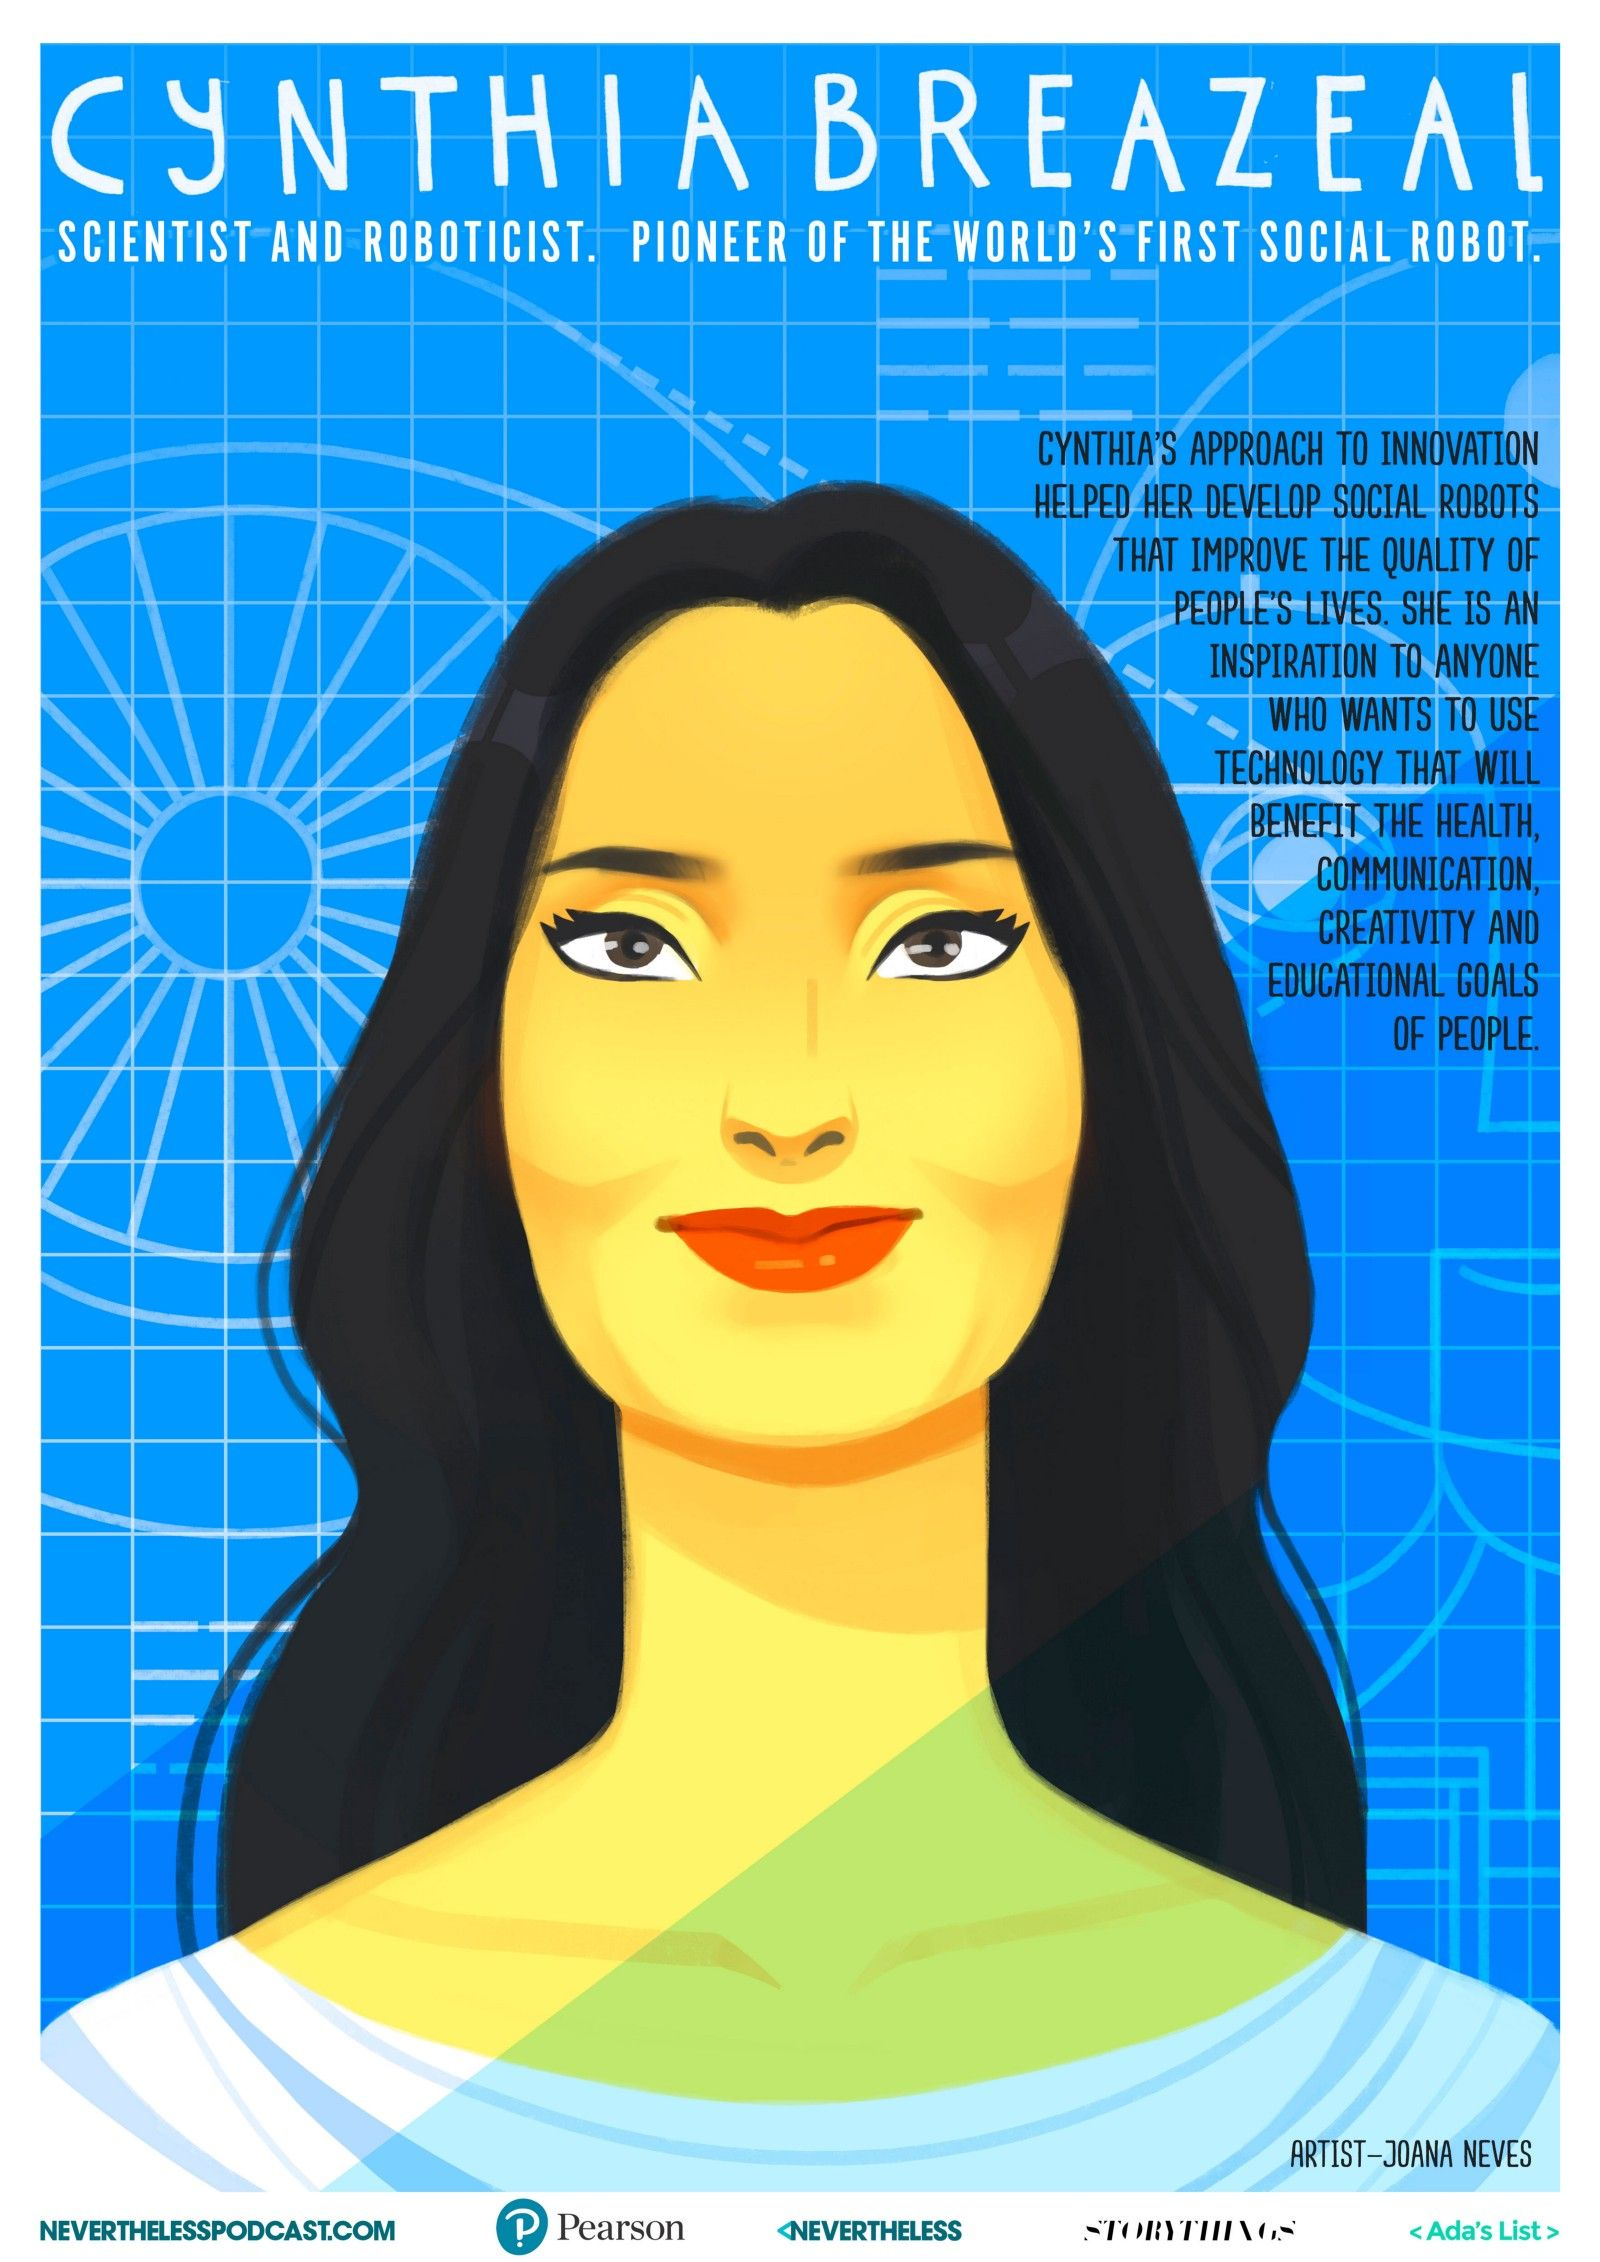 Downloadable Stem Role Models Posters Celebrate Women Innovators